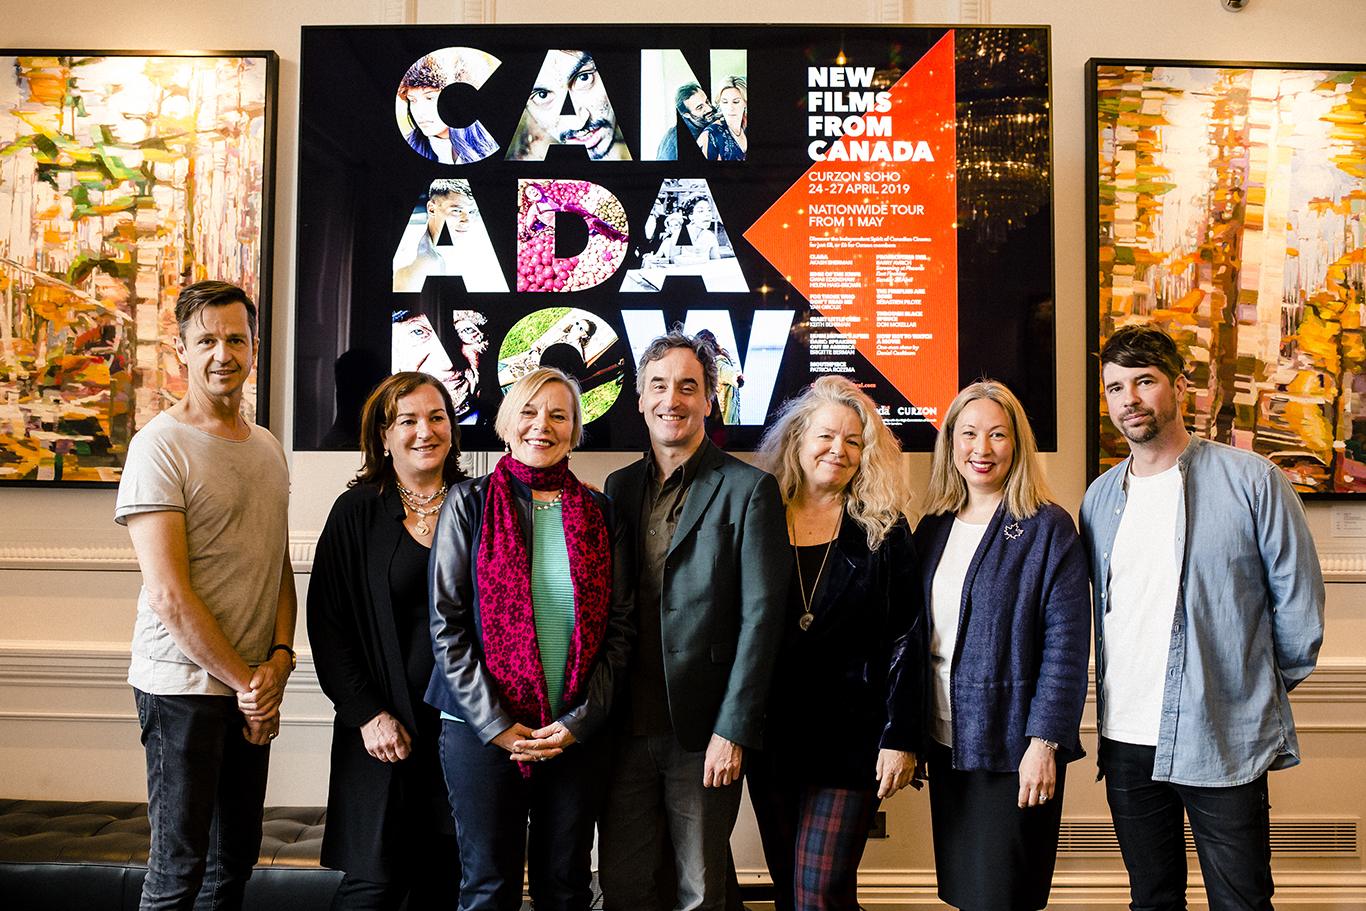 From L-R: Keith Behrman, GIANT LITTLE ONES; Brigitte Hubmann, Head of Canada Now, Telefilm Canada; Brigitte Berman, HUGH HEFNER'S AFTER DARK: SPEAKING OUT IN AMERICA; Don McKellar, THROUGH BLACK SPRUCE; Patricia Rozema, MOUTHPIECE; Sonya Thissen, Minister-Counsellor (Political and Public Affairs), High Commission of Canada; Yan Giroux, FOR THOSE WHO DON'T READ ME/À TOUS CEUX QUI NE ME LISENT PAS